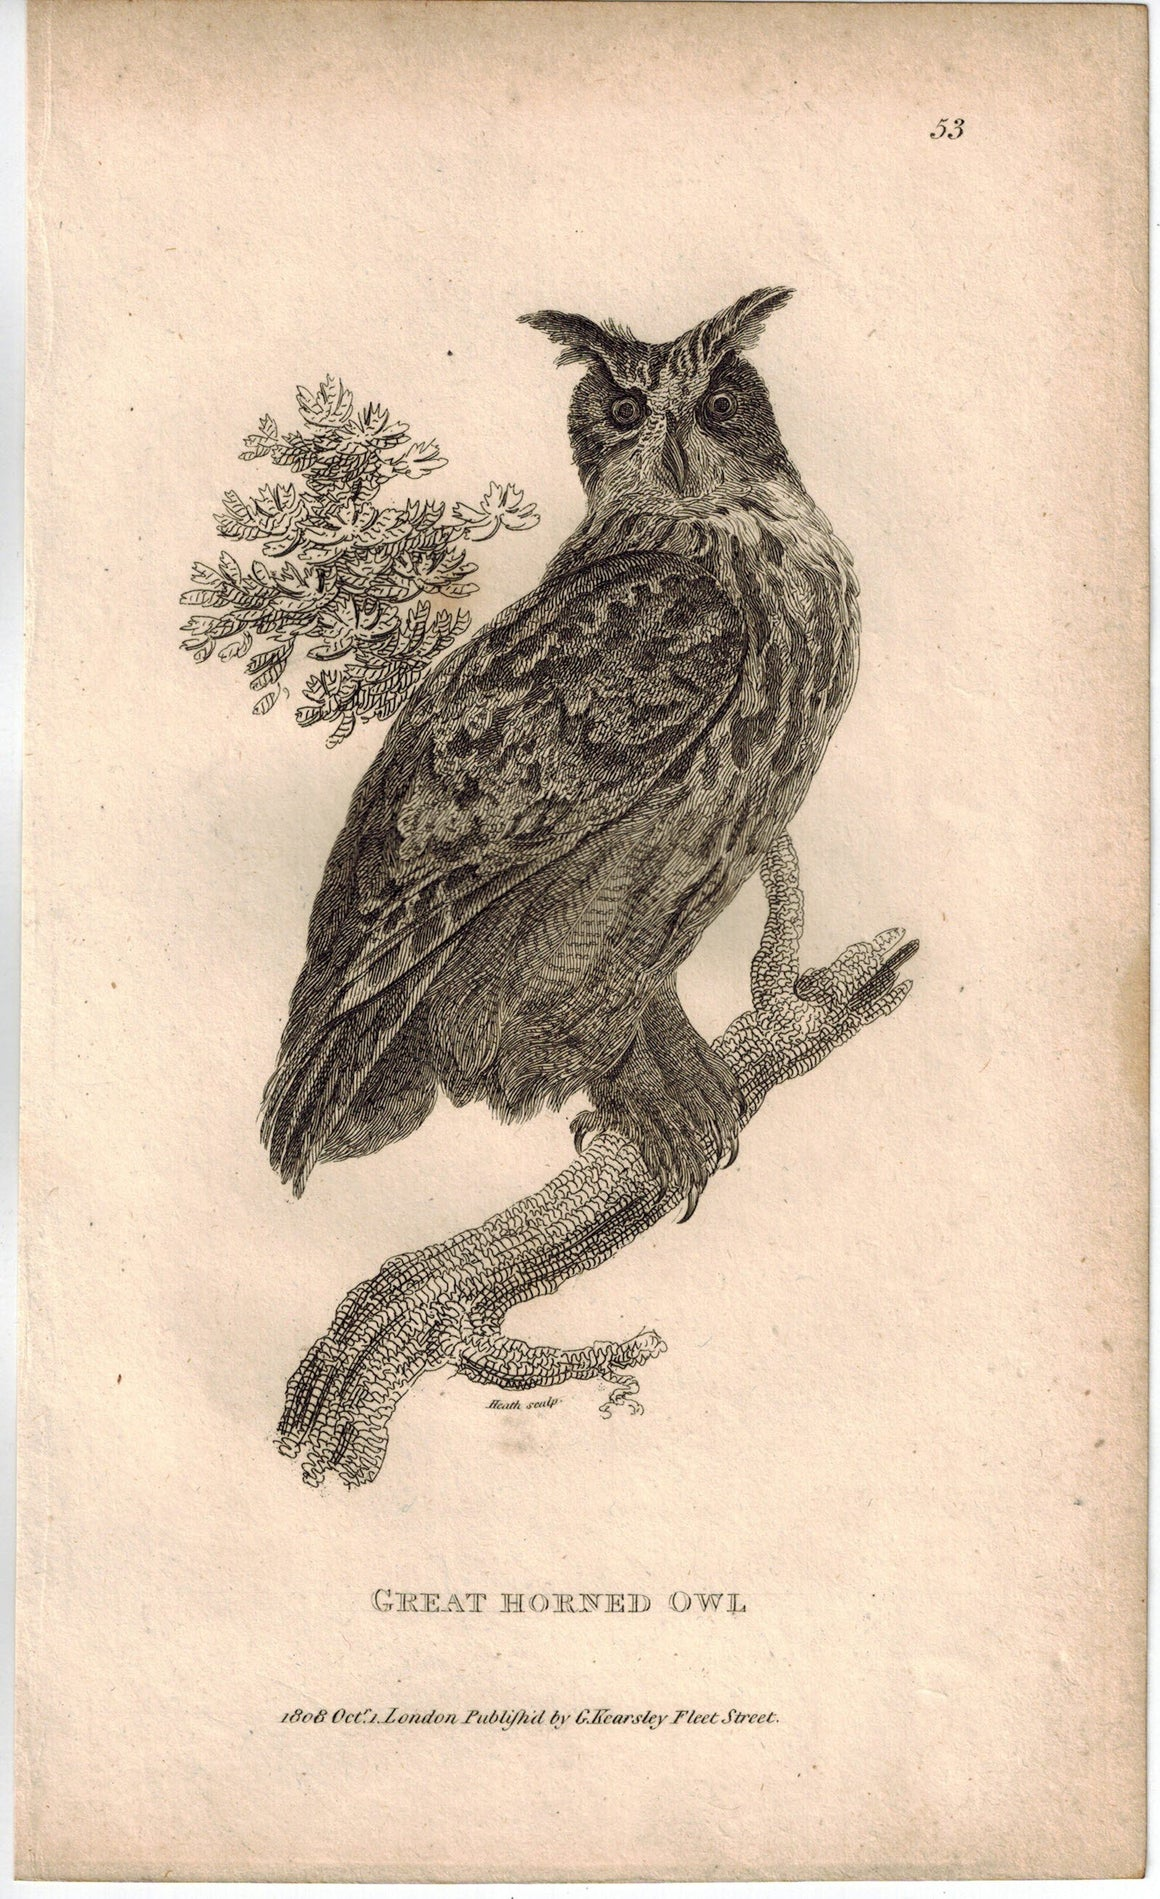 Great Horned Owl Print 1809 George Shaw Original Engraving